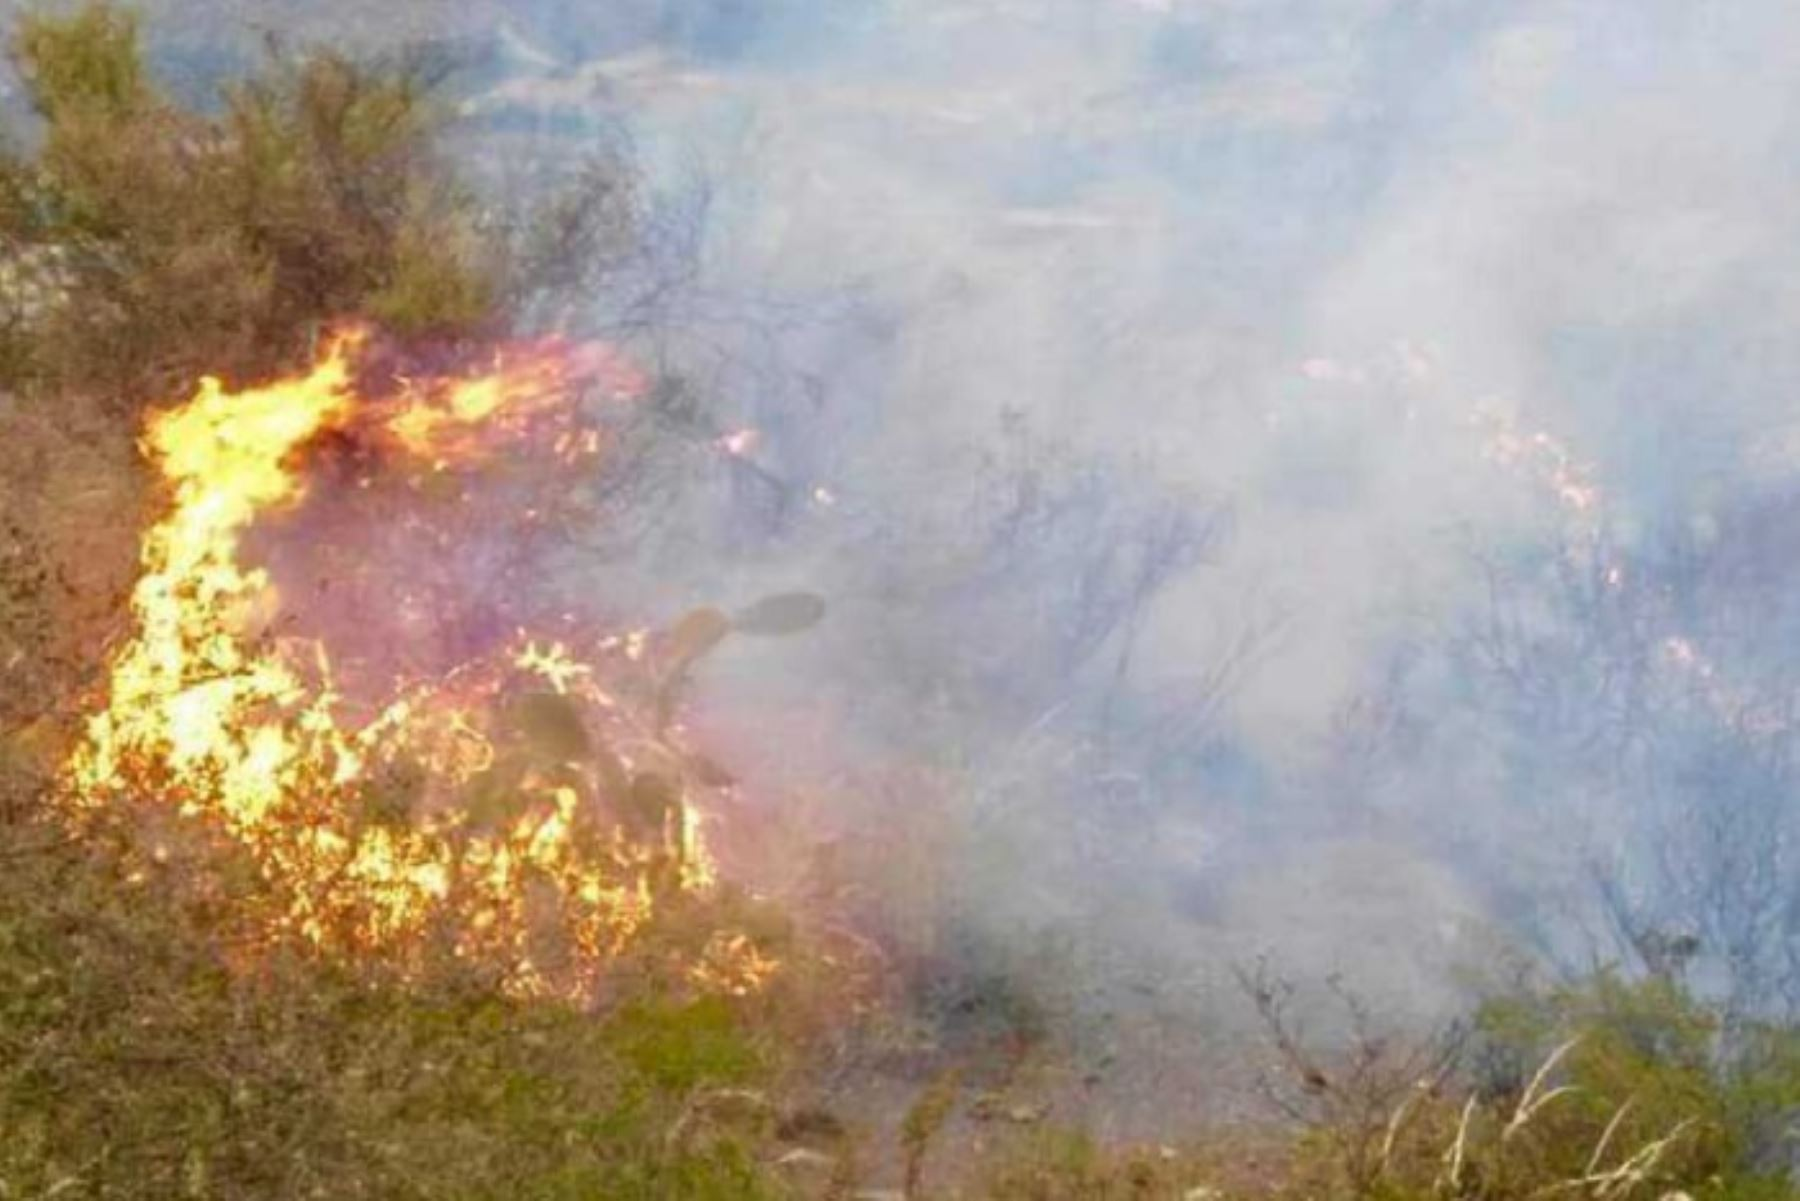 Peru passes forest fire prevention plan as the disaster threat increases